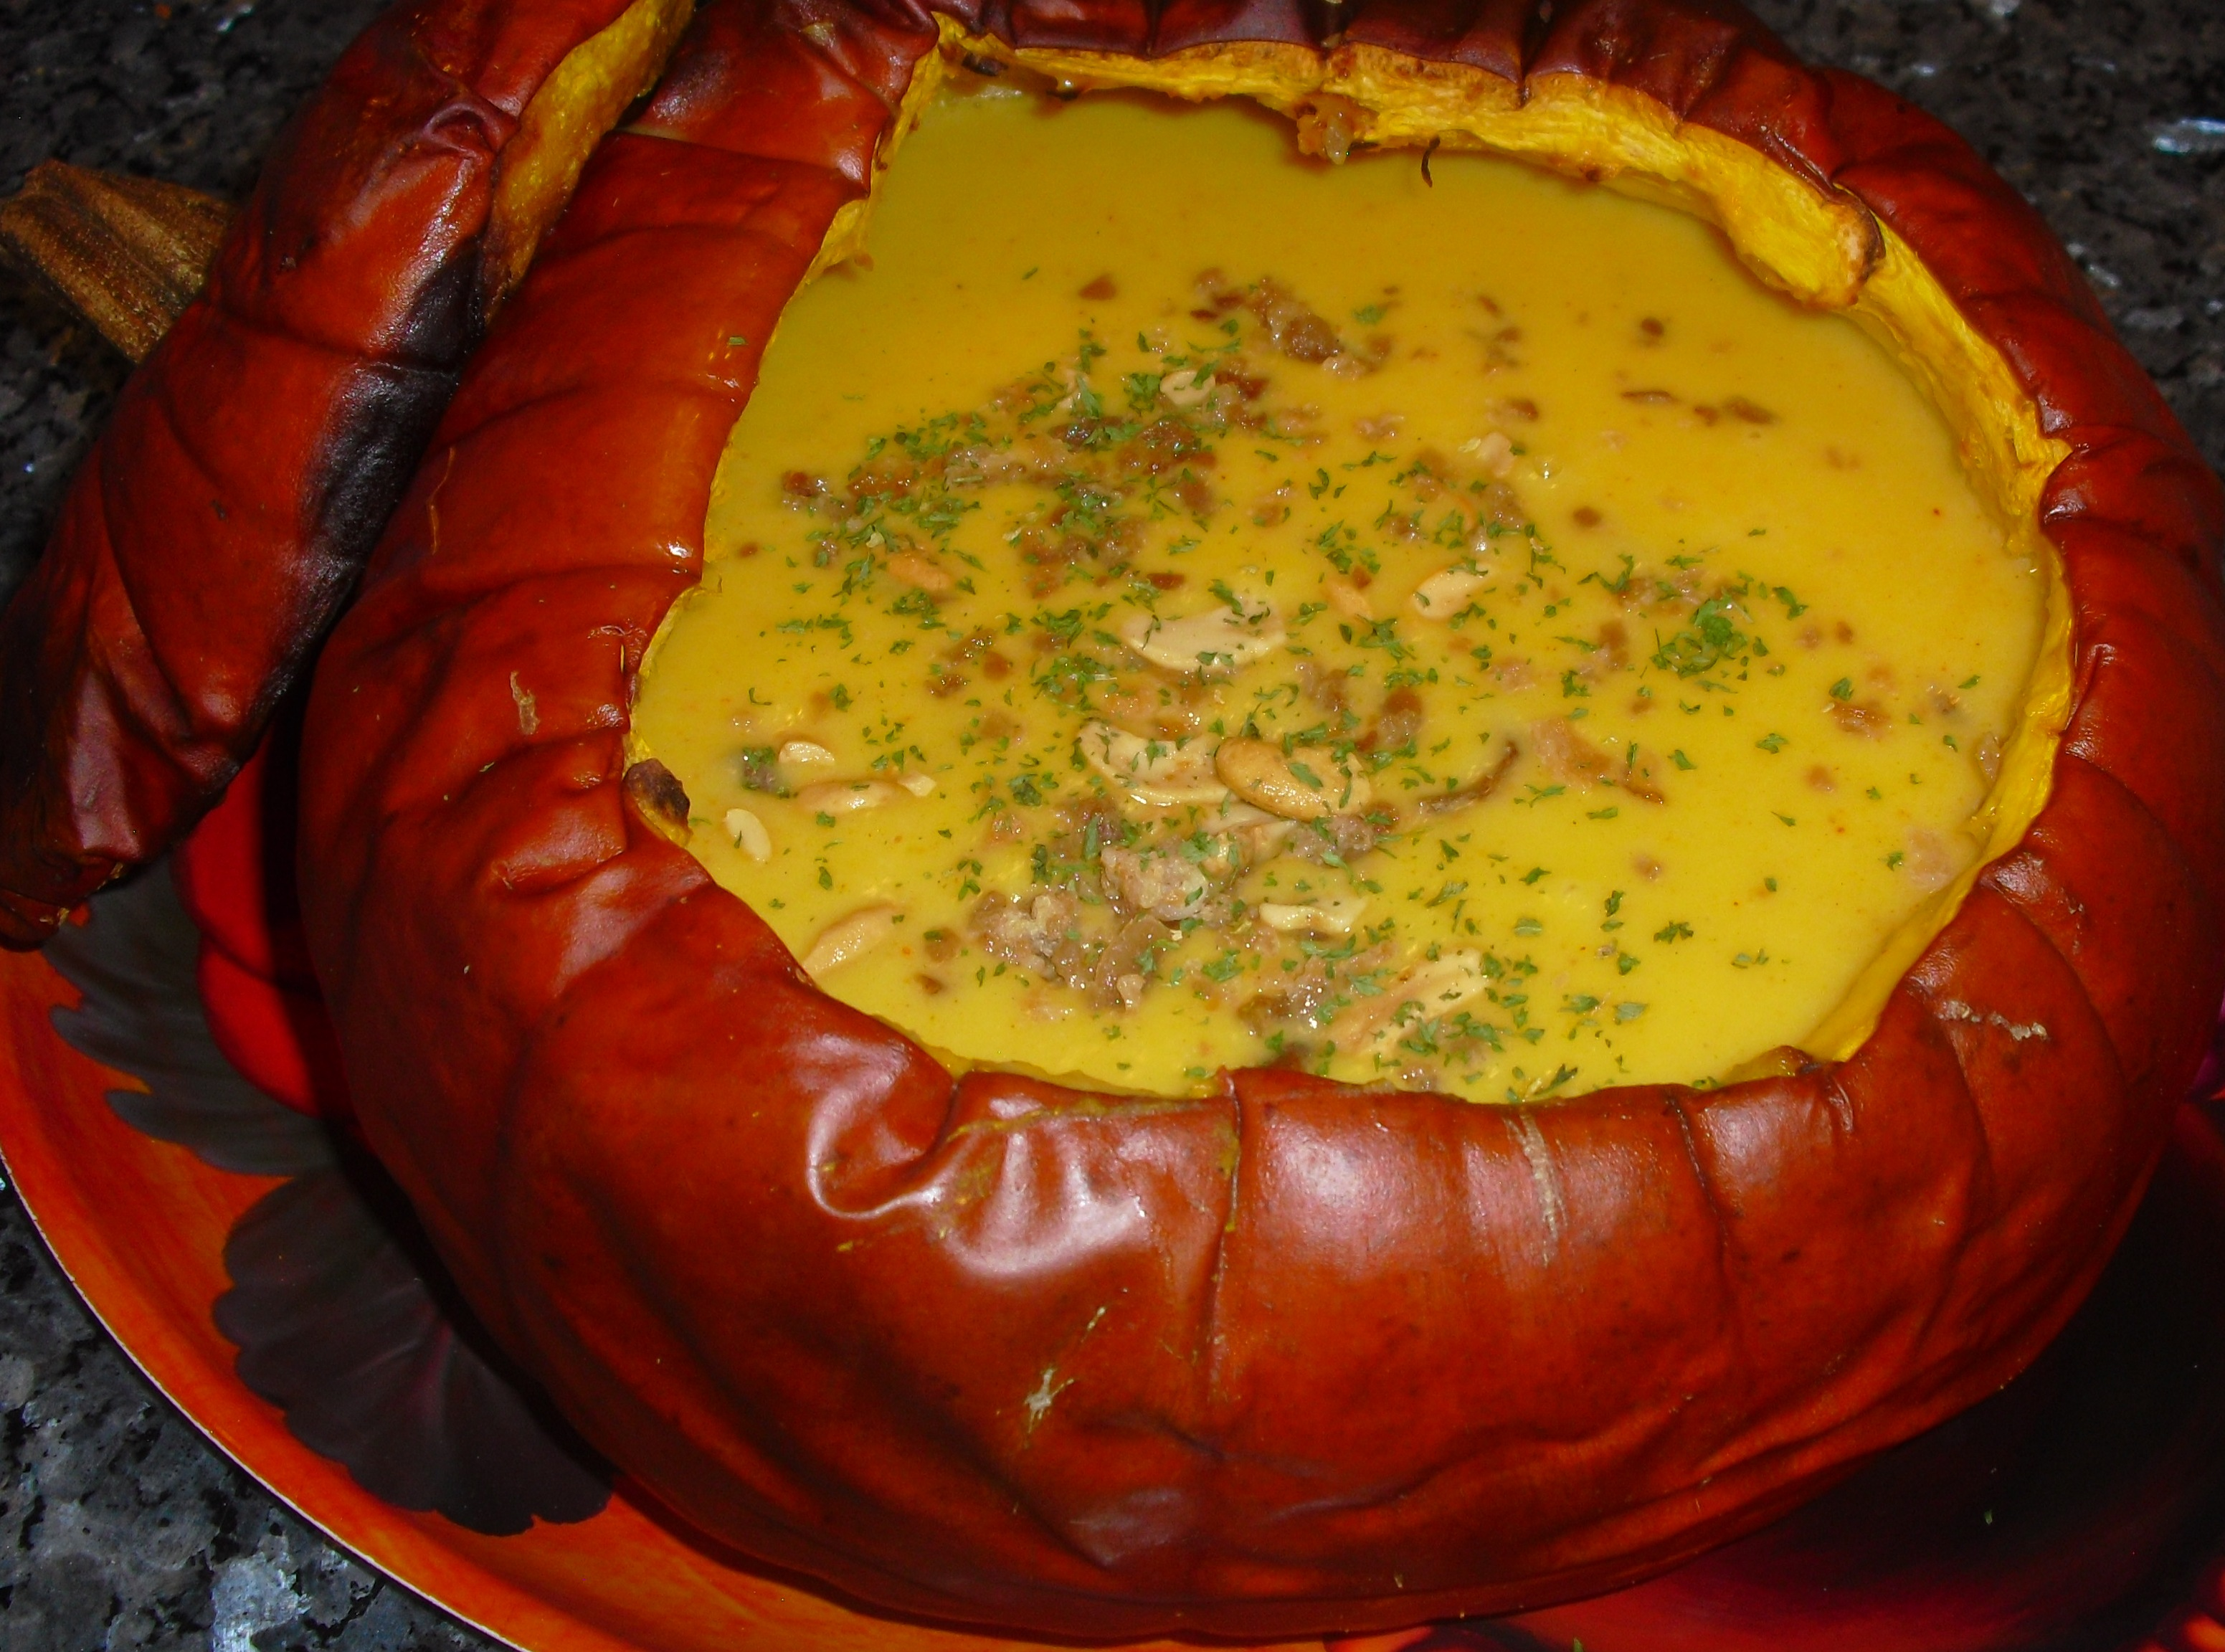 Curried Pumpkin Soup Baked in a Pumpkin